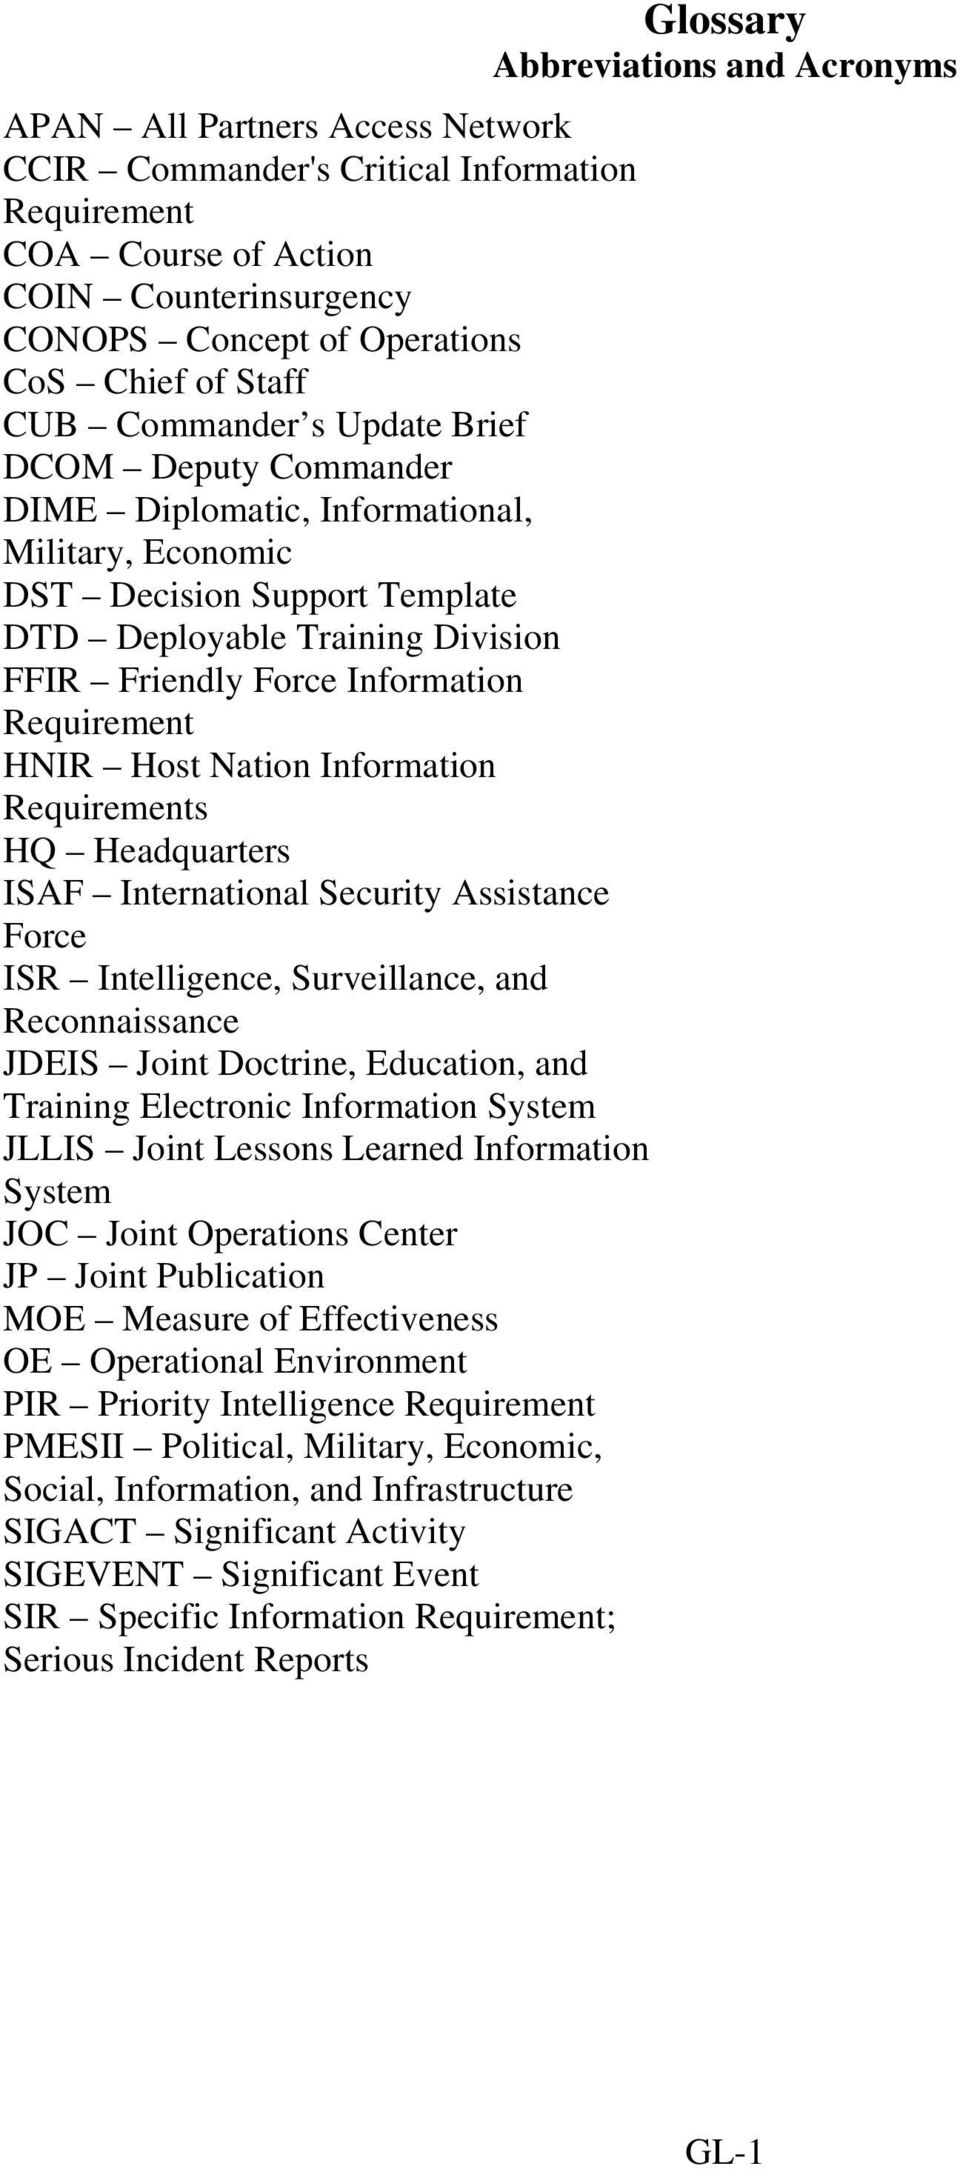 Nation Information Requirements HQ Headquarters ISAF International Security Assistance Force ISR Intelligence, Surveillance, and Reconnaissance JDEIS Joint Doctrine, Education, and Training